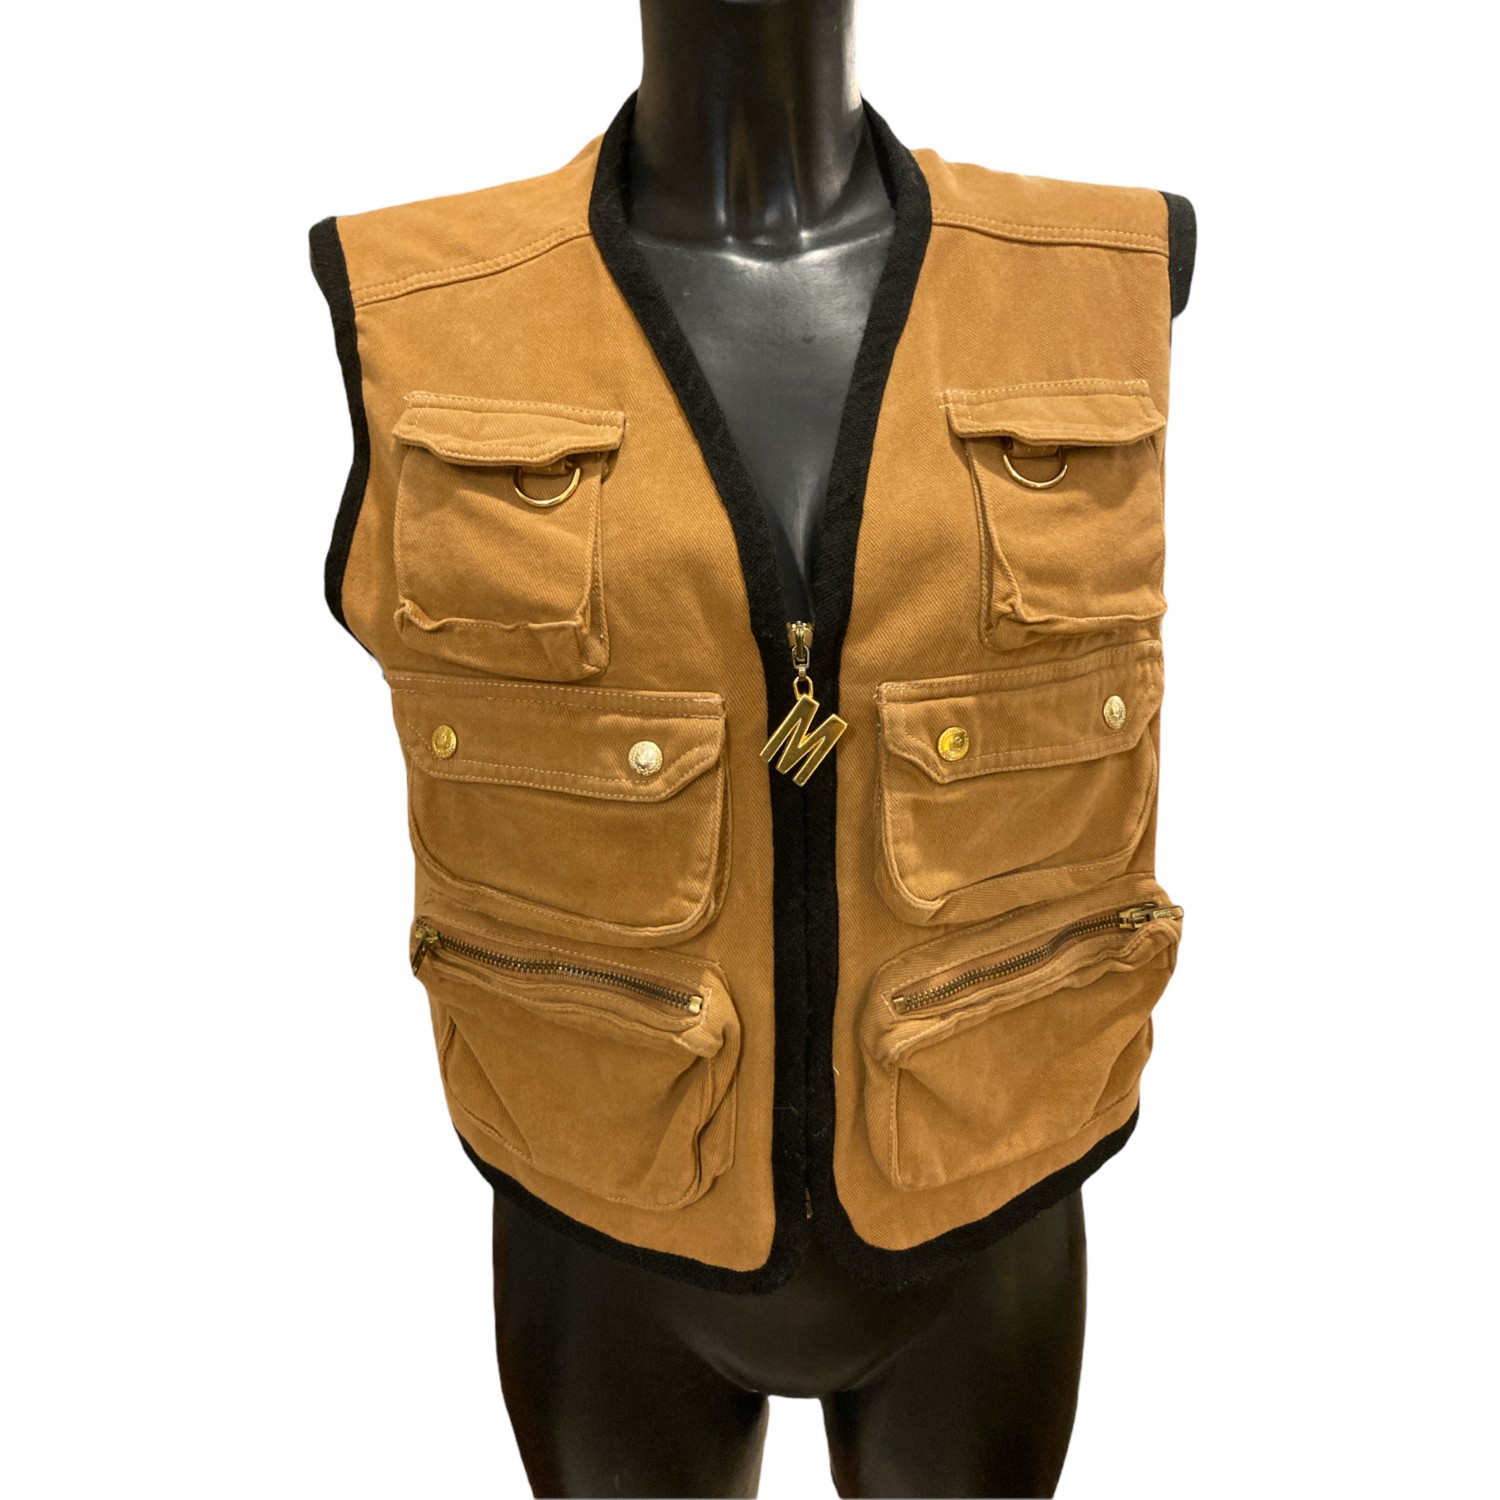 Gillet Moschino Jeans